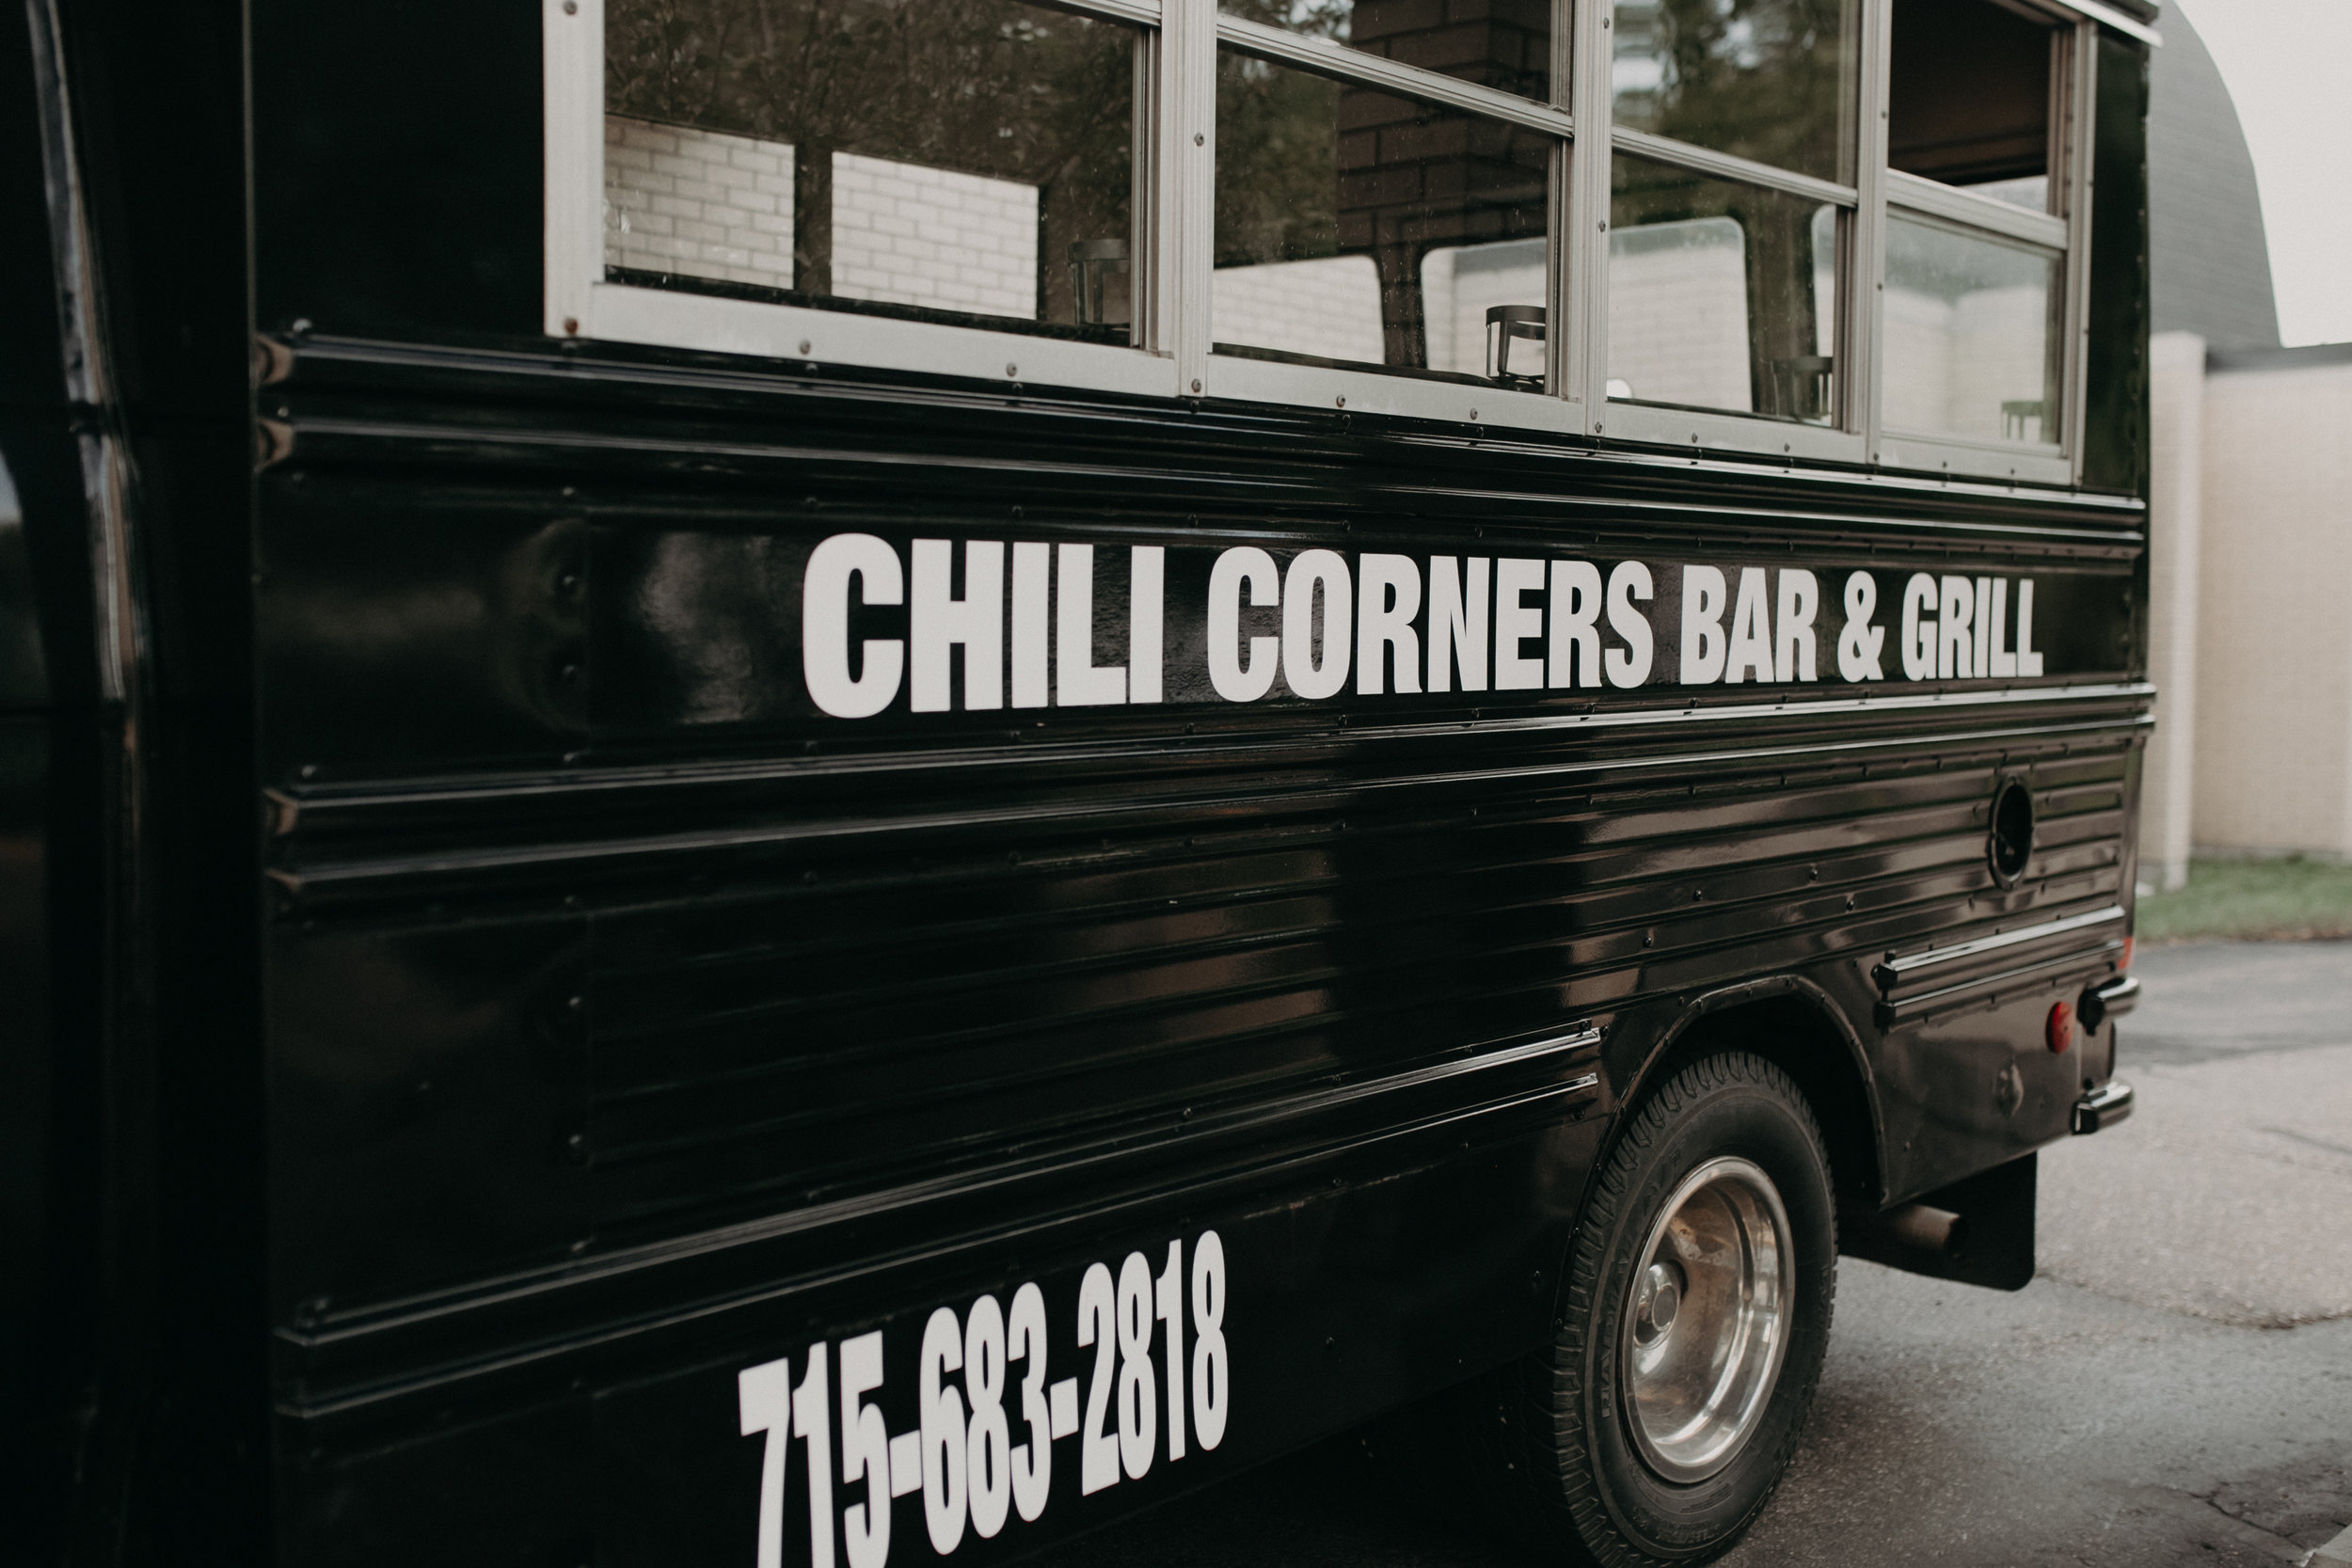 chili-corners-bar-grill-bus-party-wedding